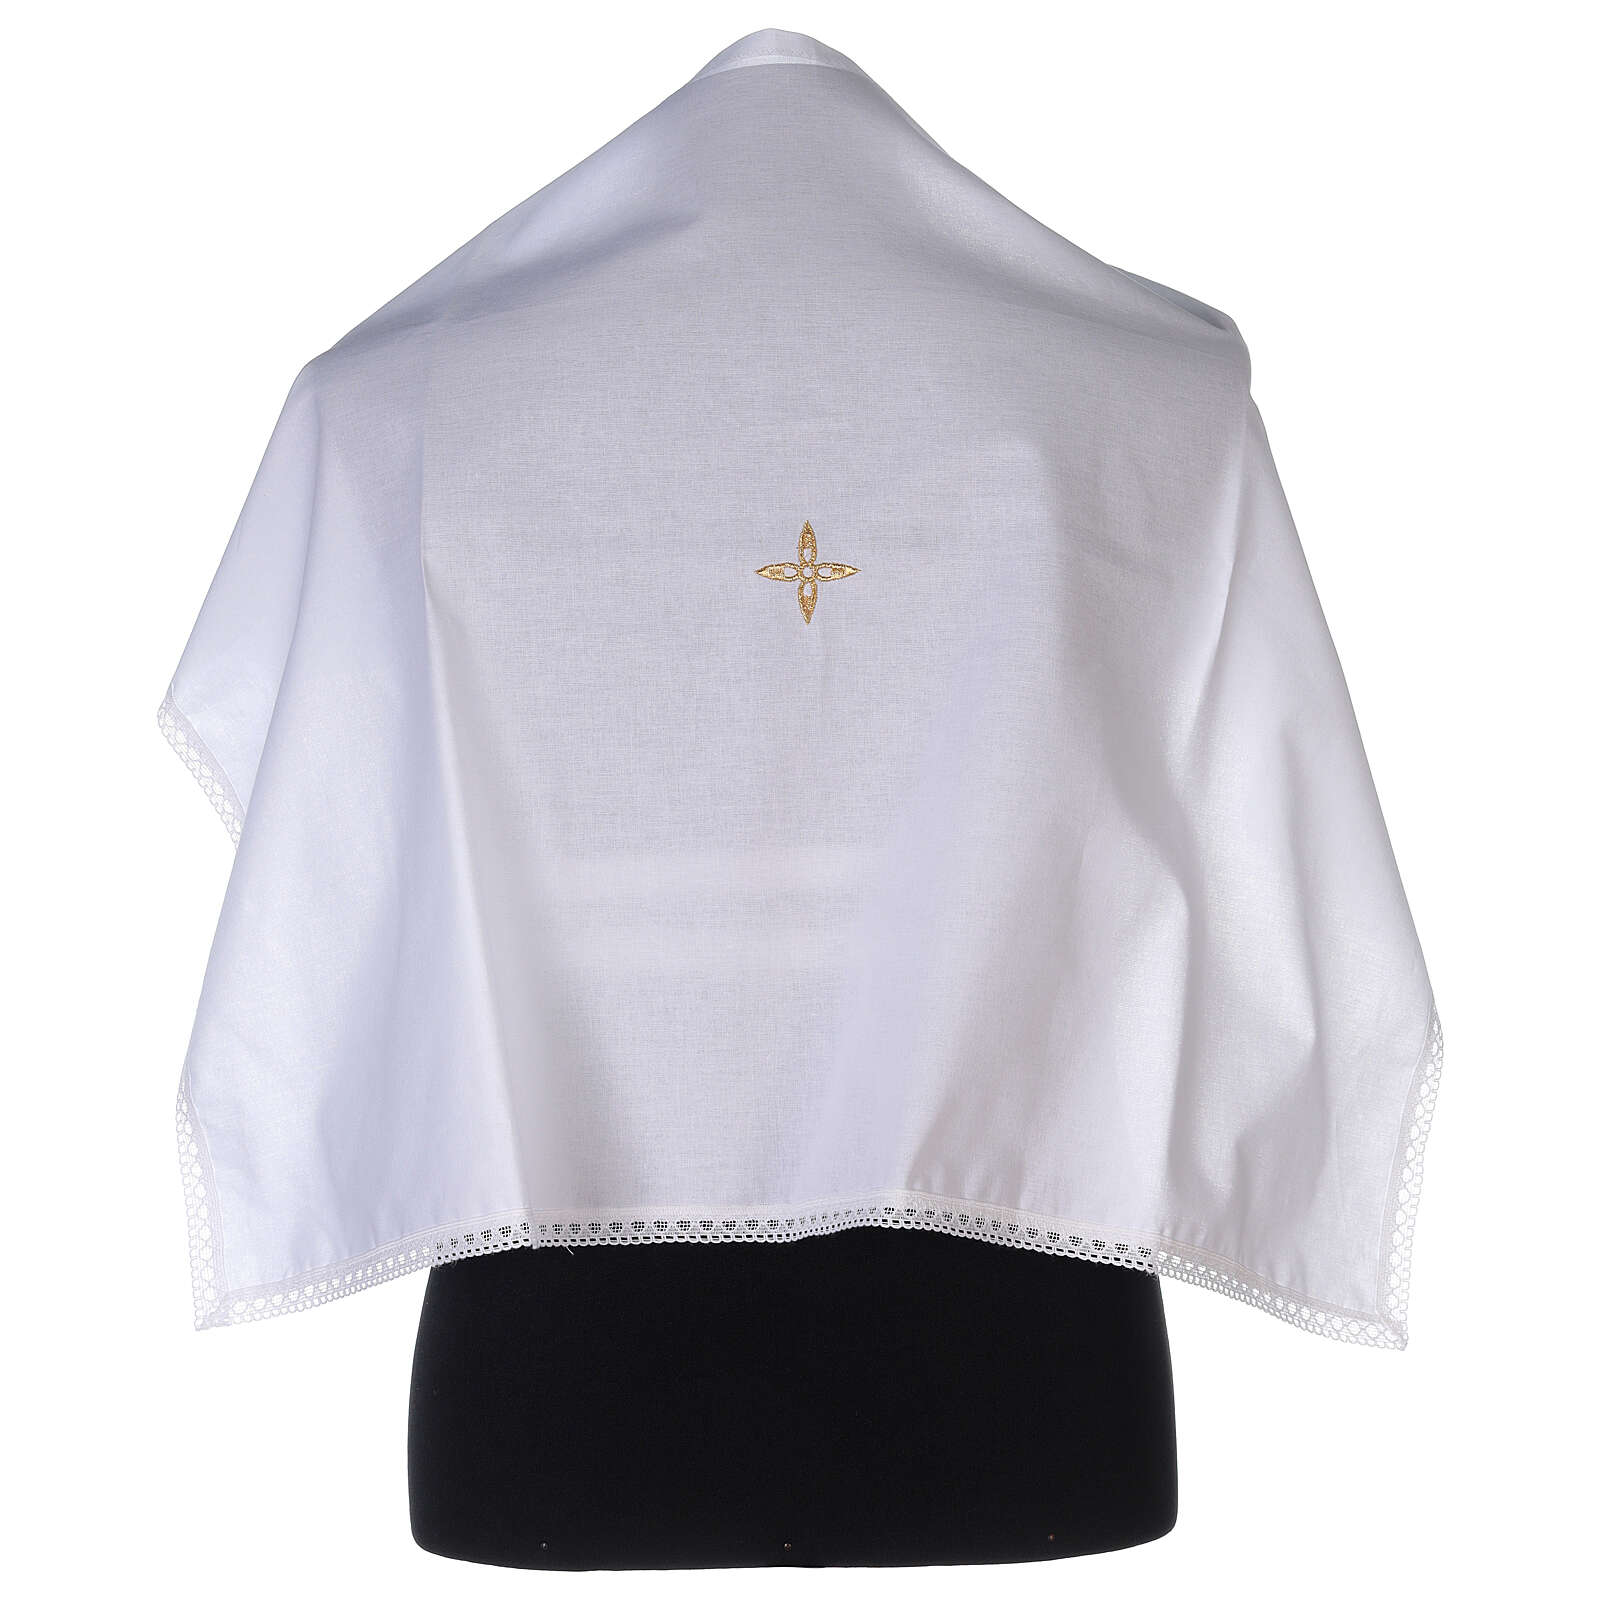 Cotton amice with embroidered gold flower shaped cross 4